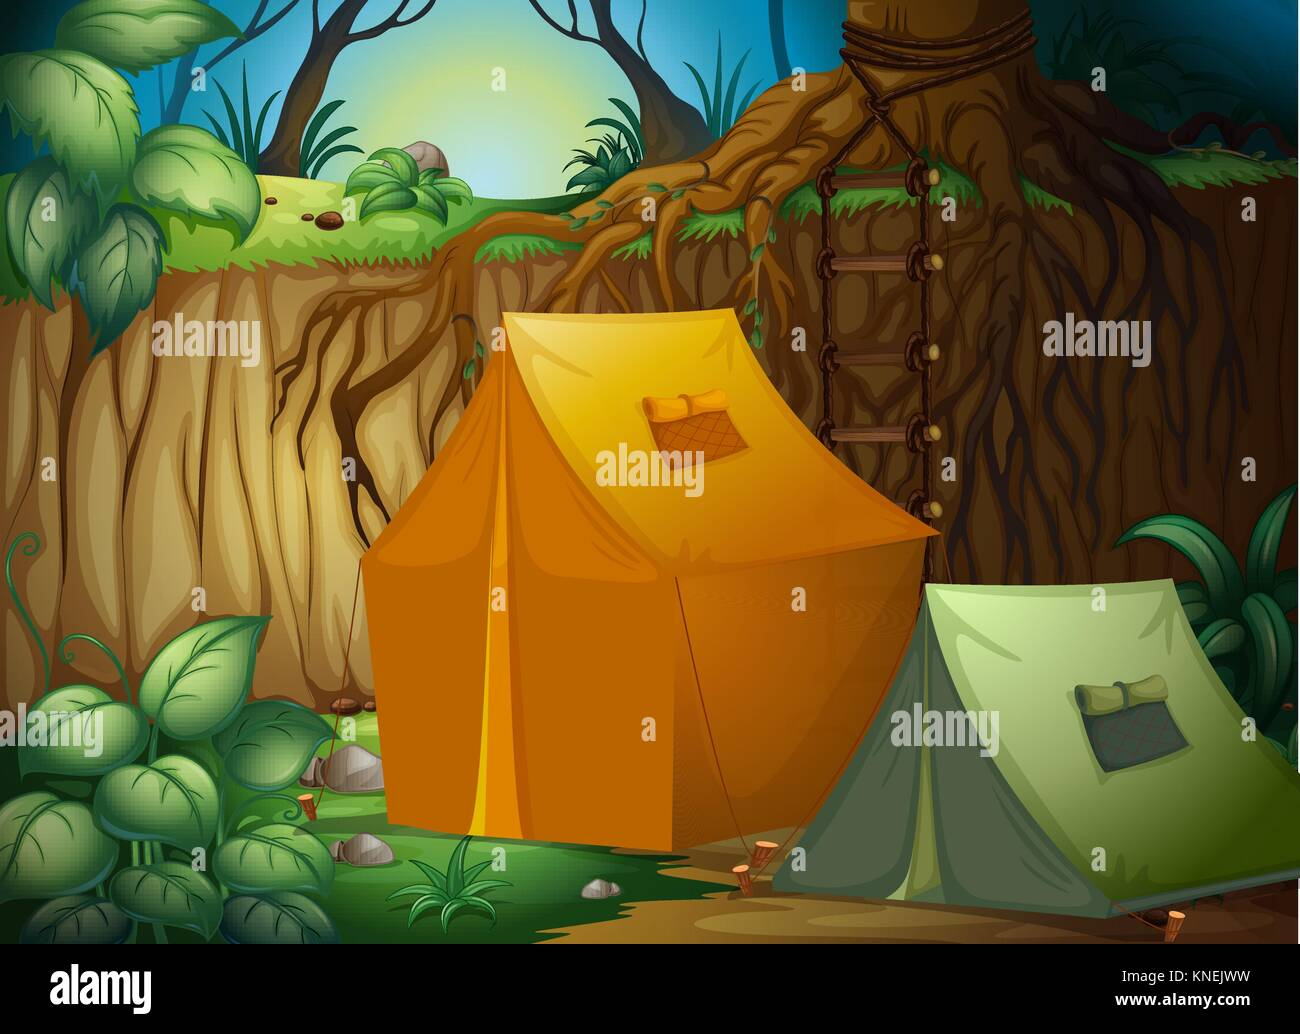 Illustration of a tent camp in the woods - Stock Vector